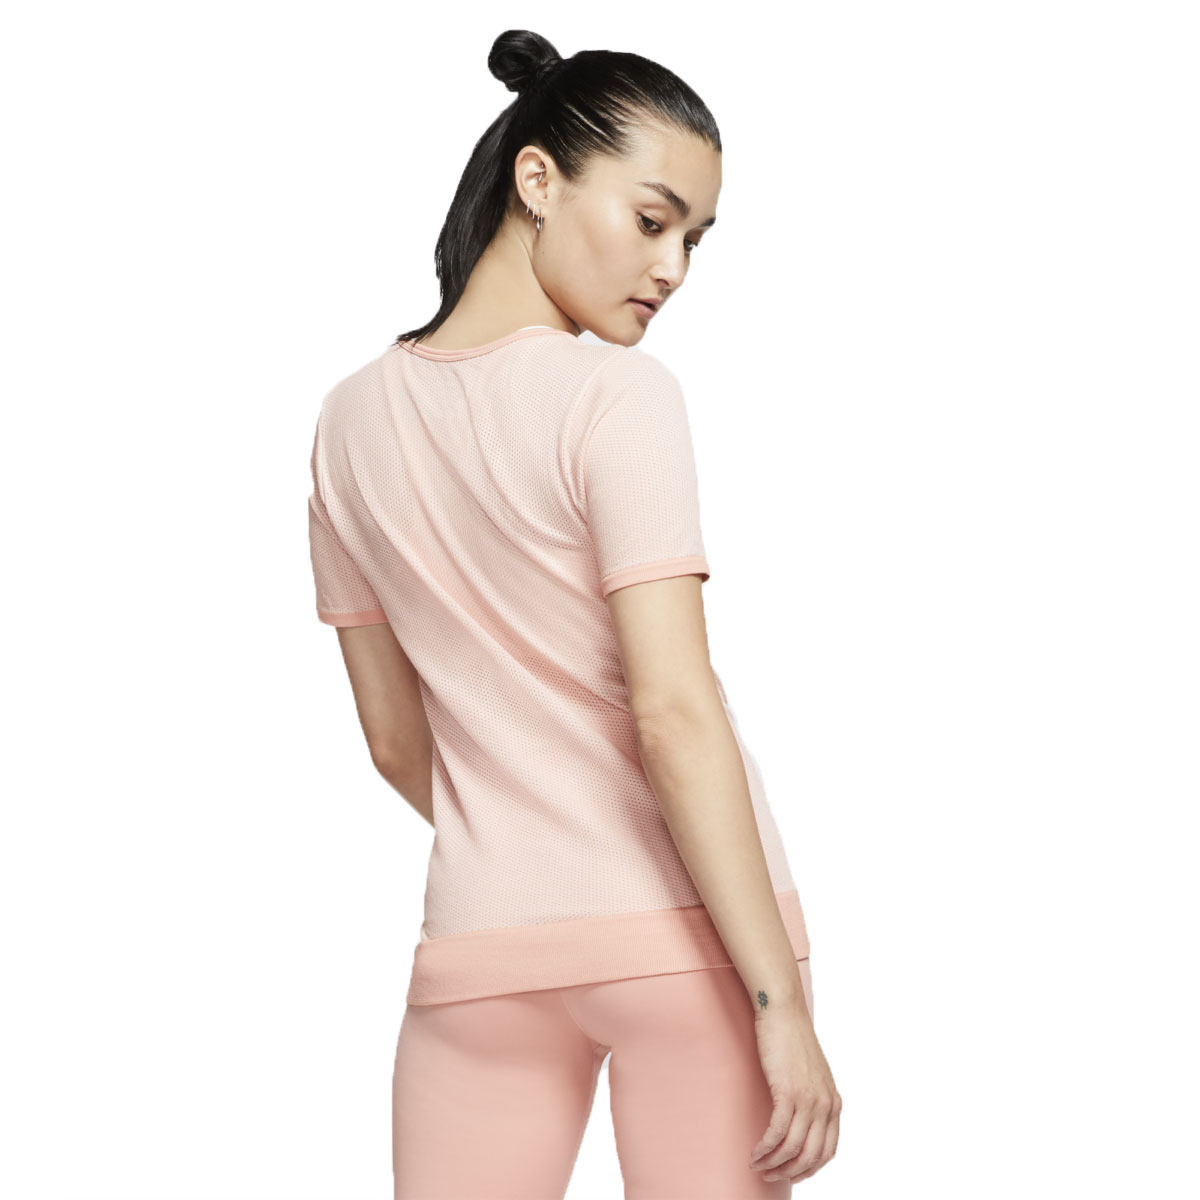 Women's Nike Infinite Top Short Sleeve  - Color: Pink Quartz/Echo Pink - Size: XS, Pink Quartz/Echo Pink, large, image 3